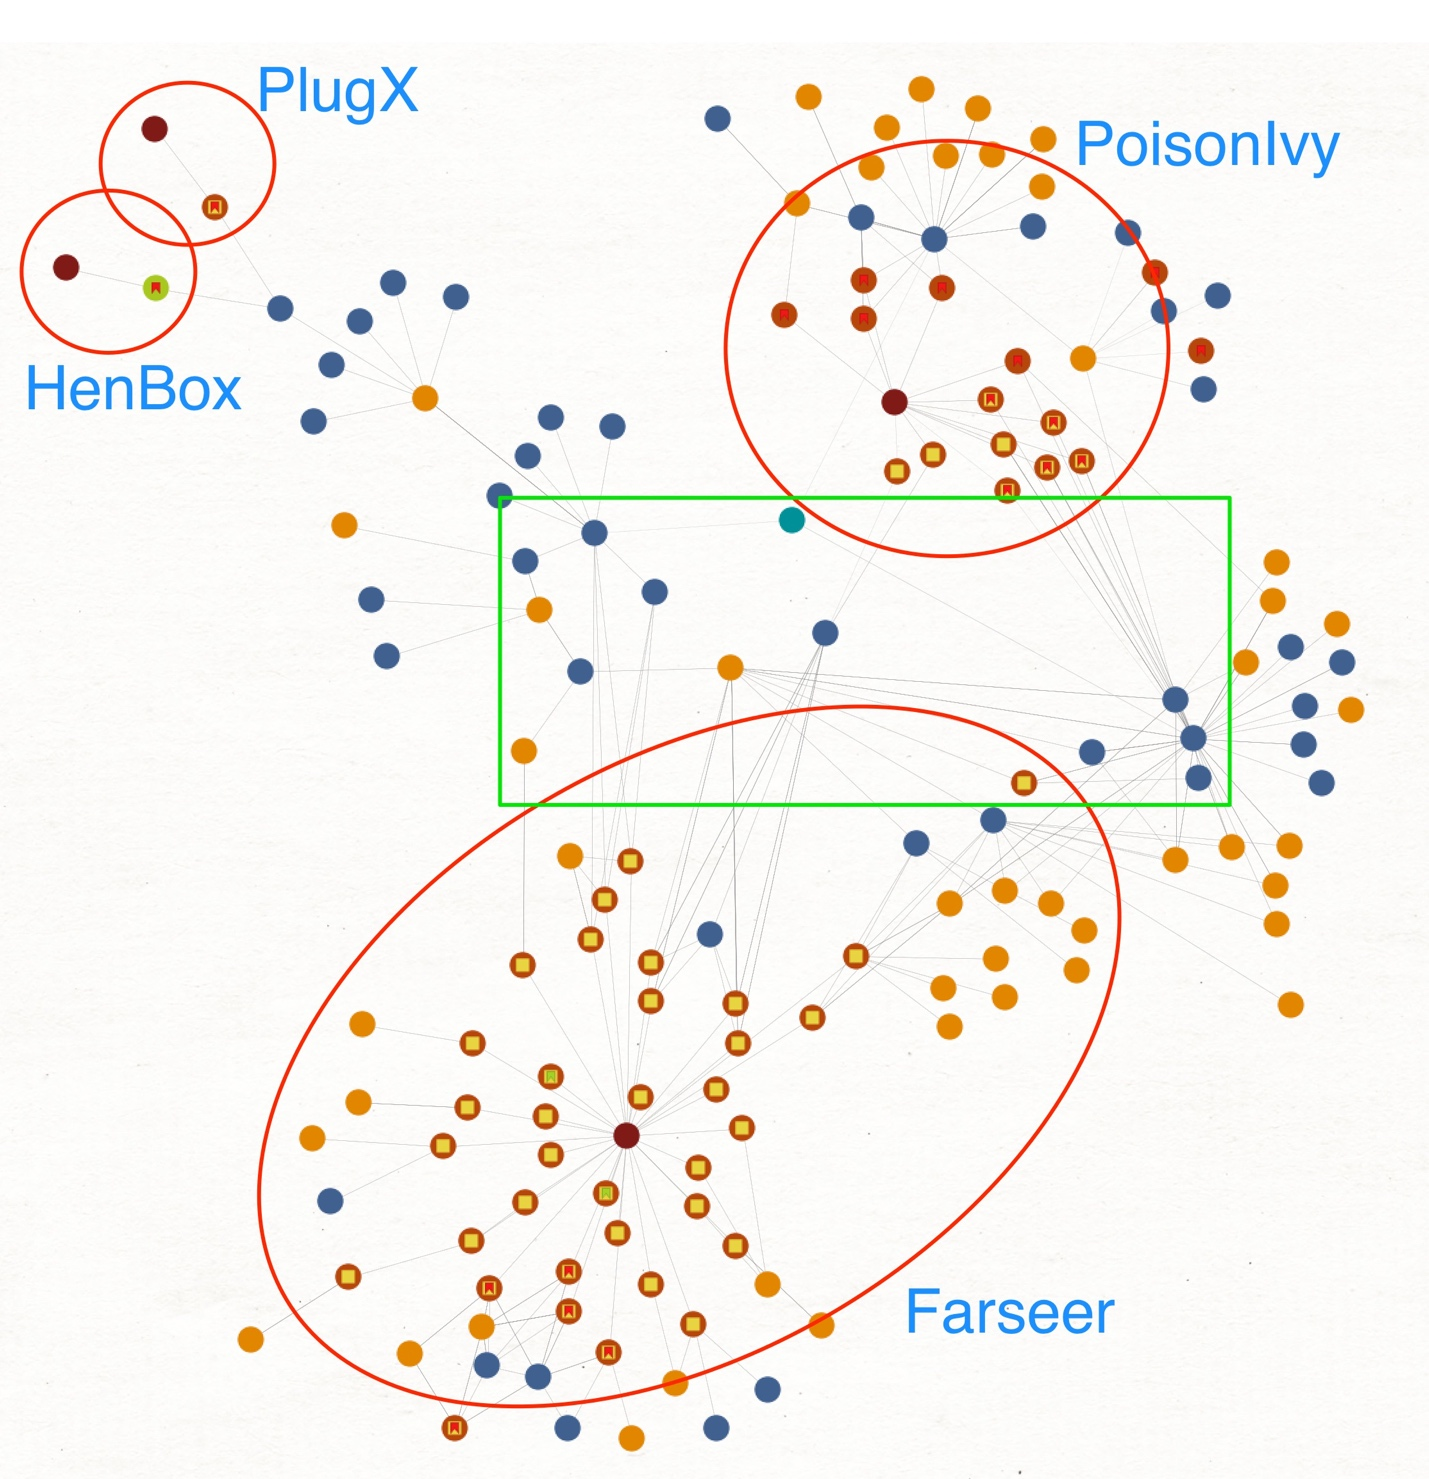 Figure 2 Maltego Chart Showing Overlaps Between Farseer And Related Threats